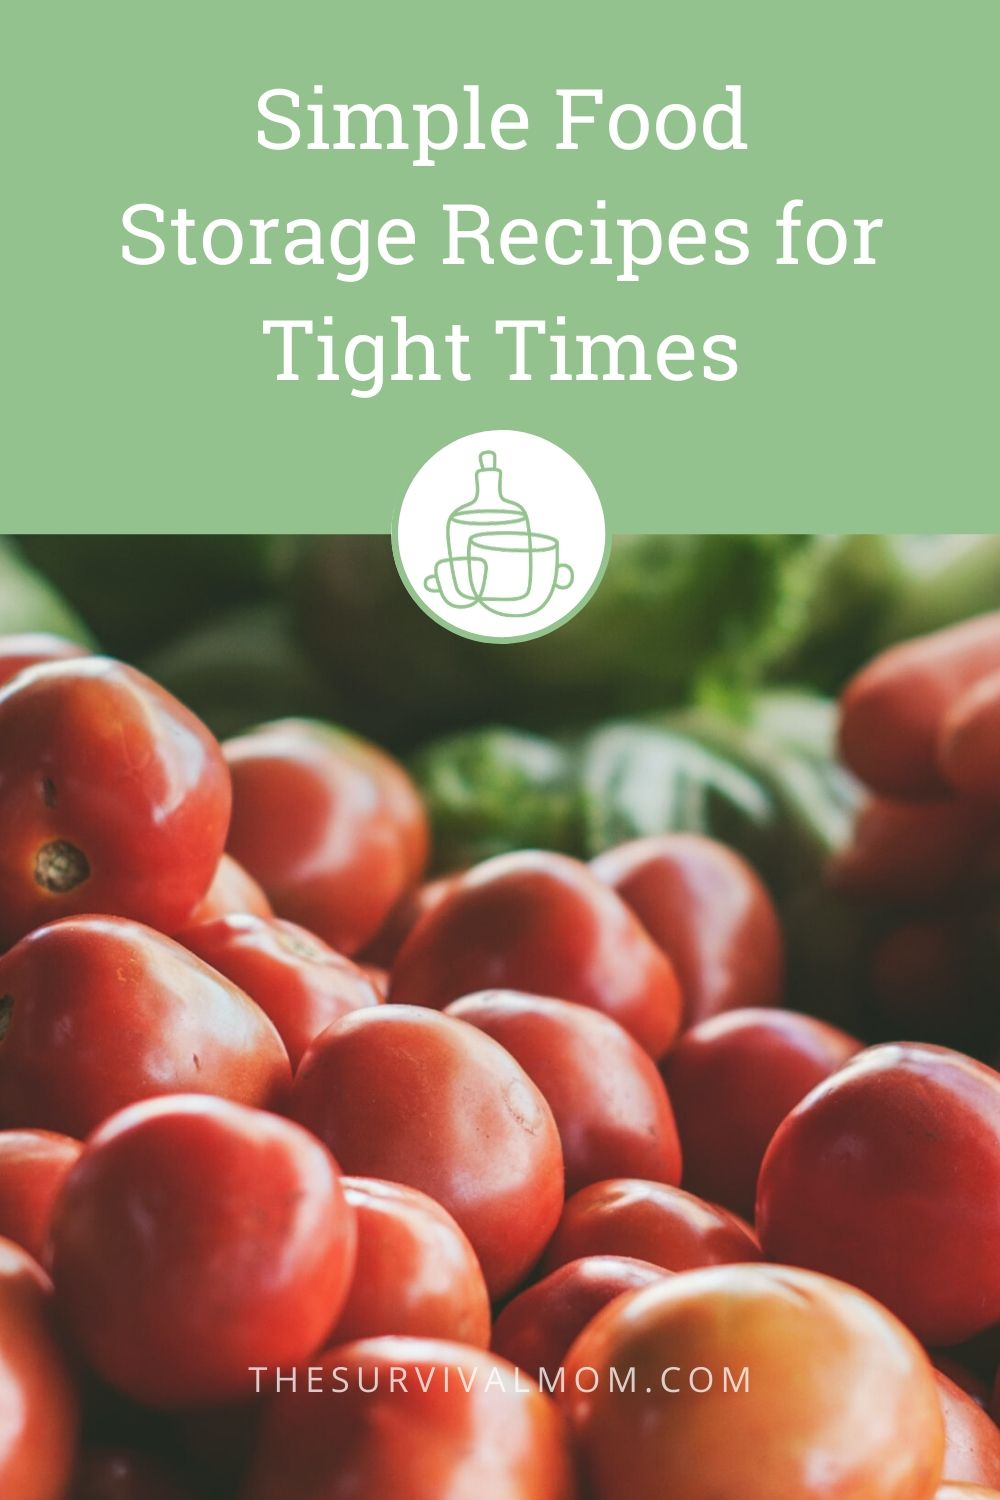 Simple Food Storage Recipes for Tight Times via The Survival Mom